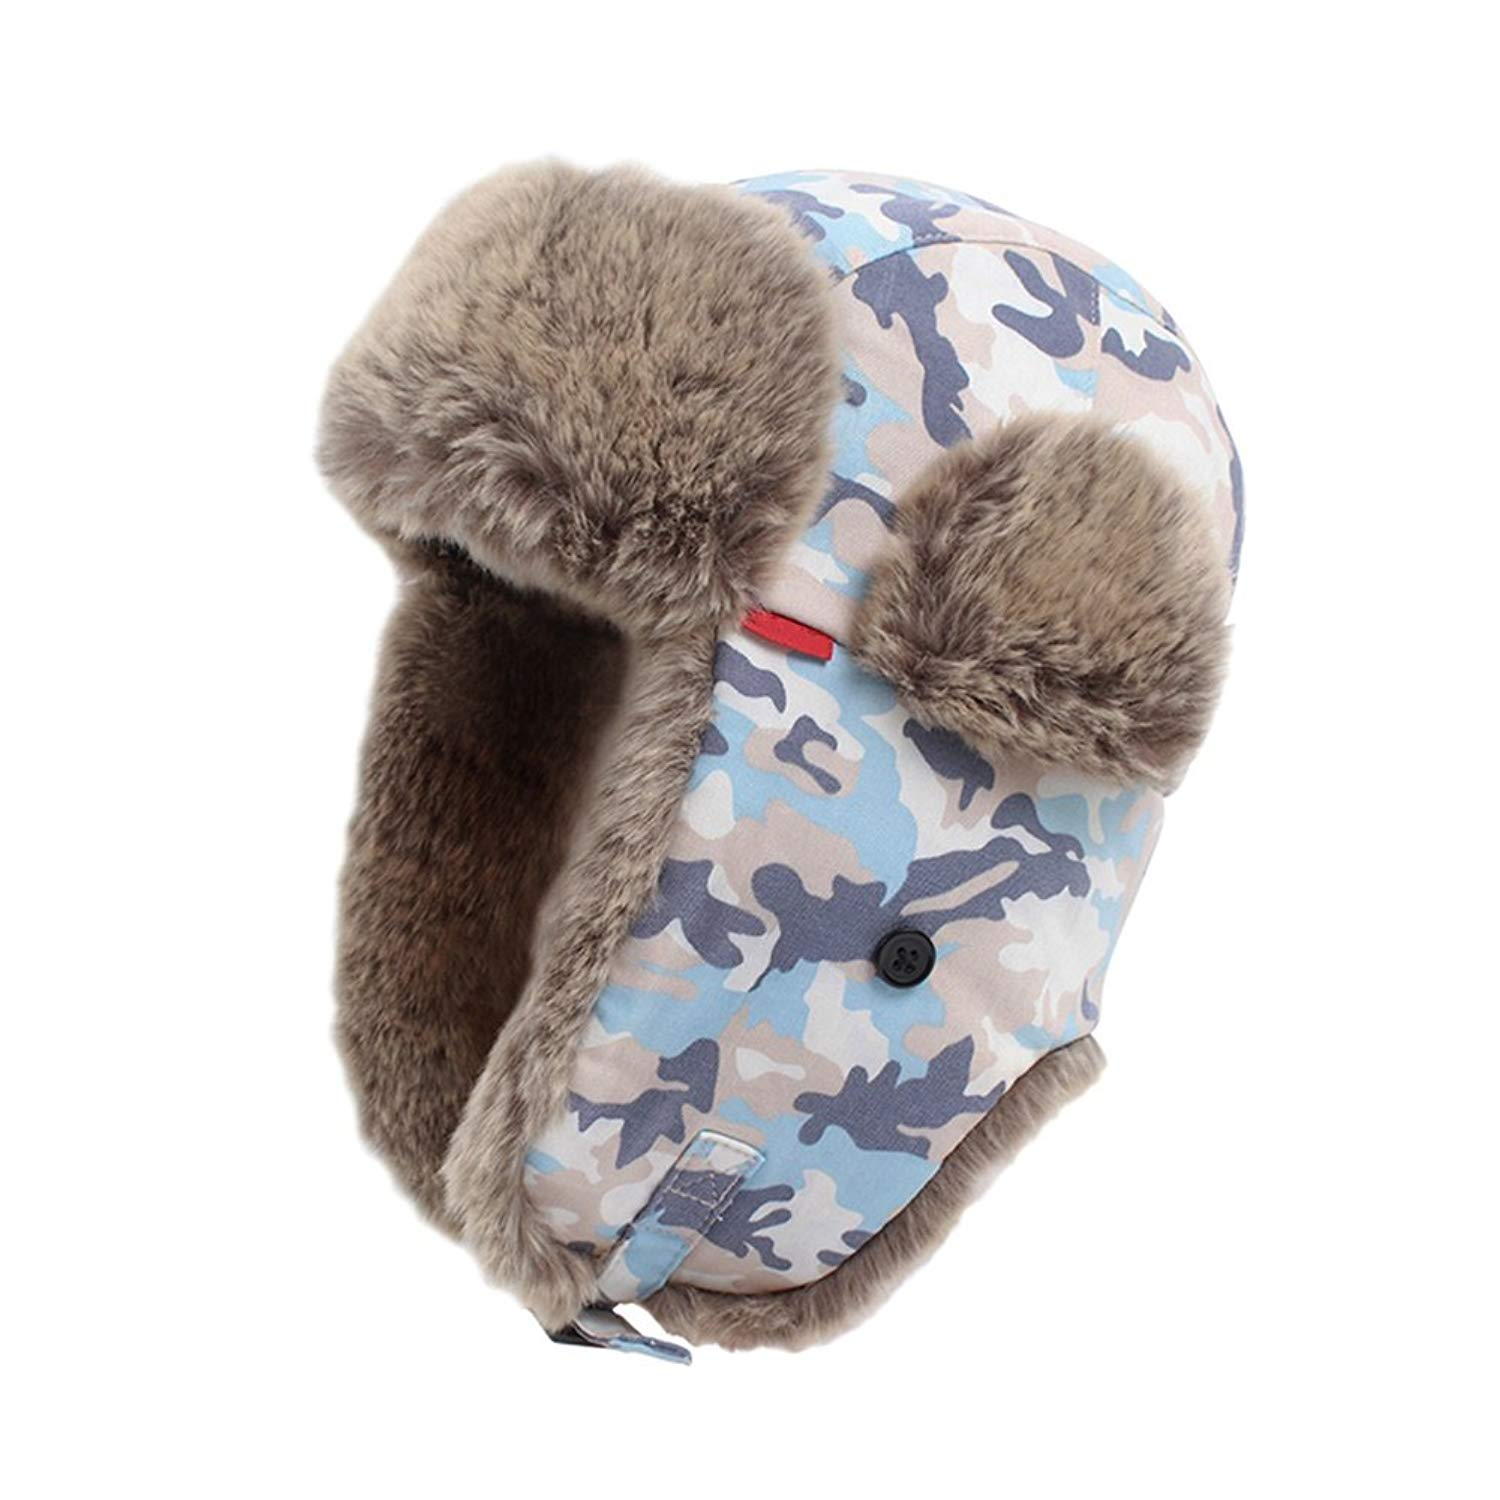 dffa1100 Get Quotations · Messagee Camo Ski Hat With Foldable Ear Flaps, Windproof  Warm Cap Aviator Hat